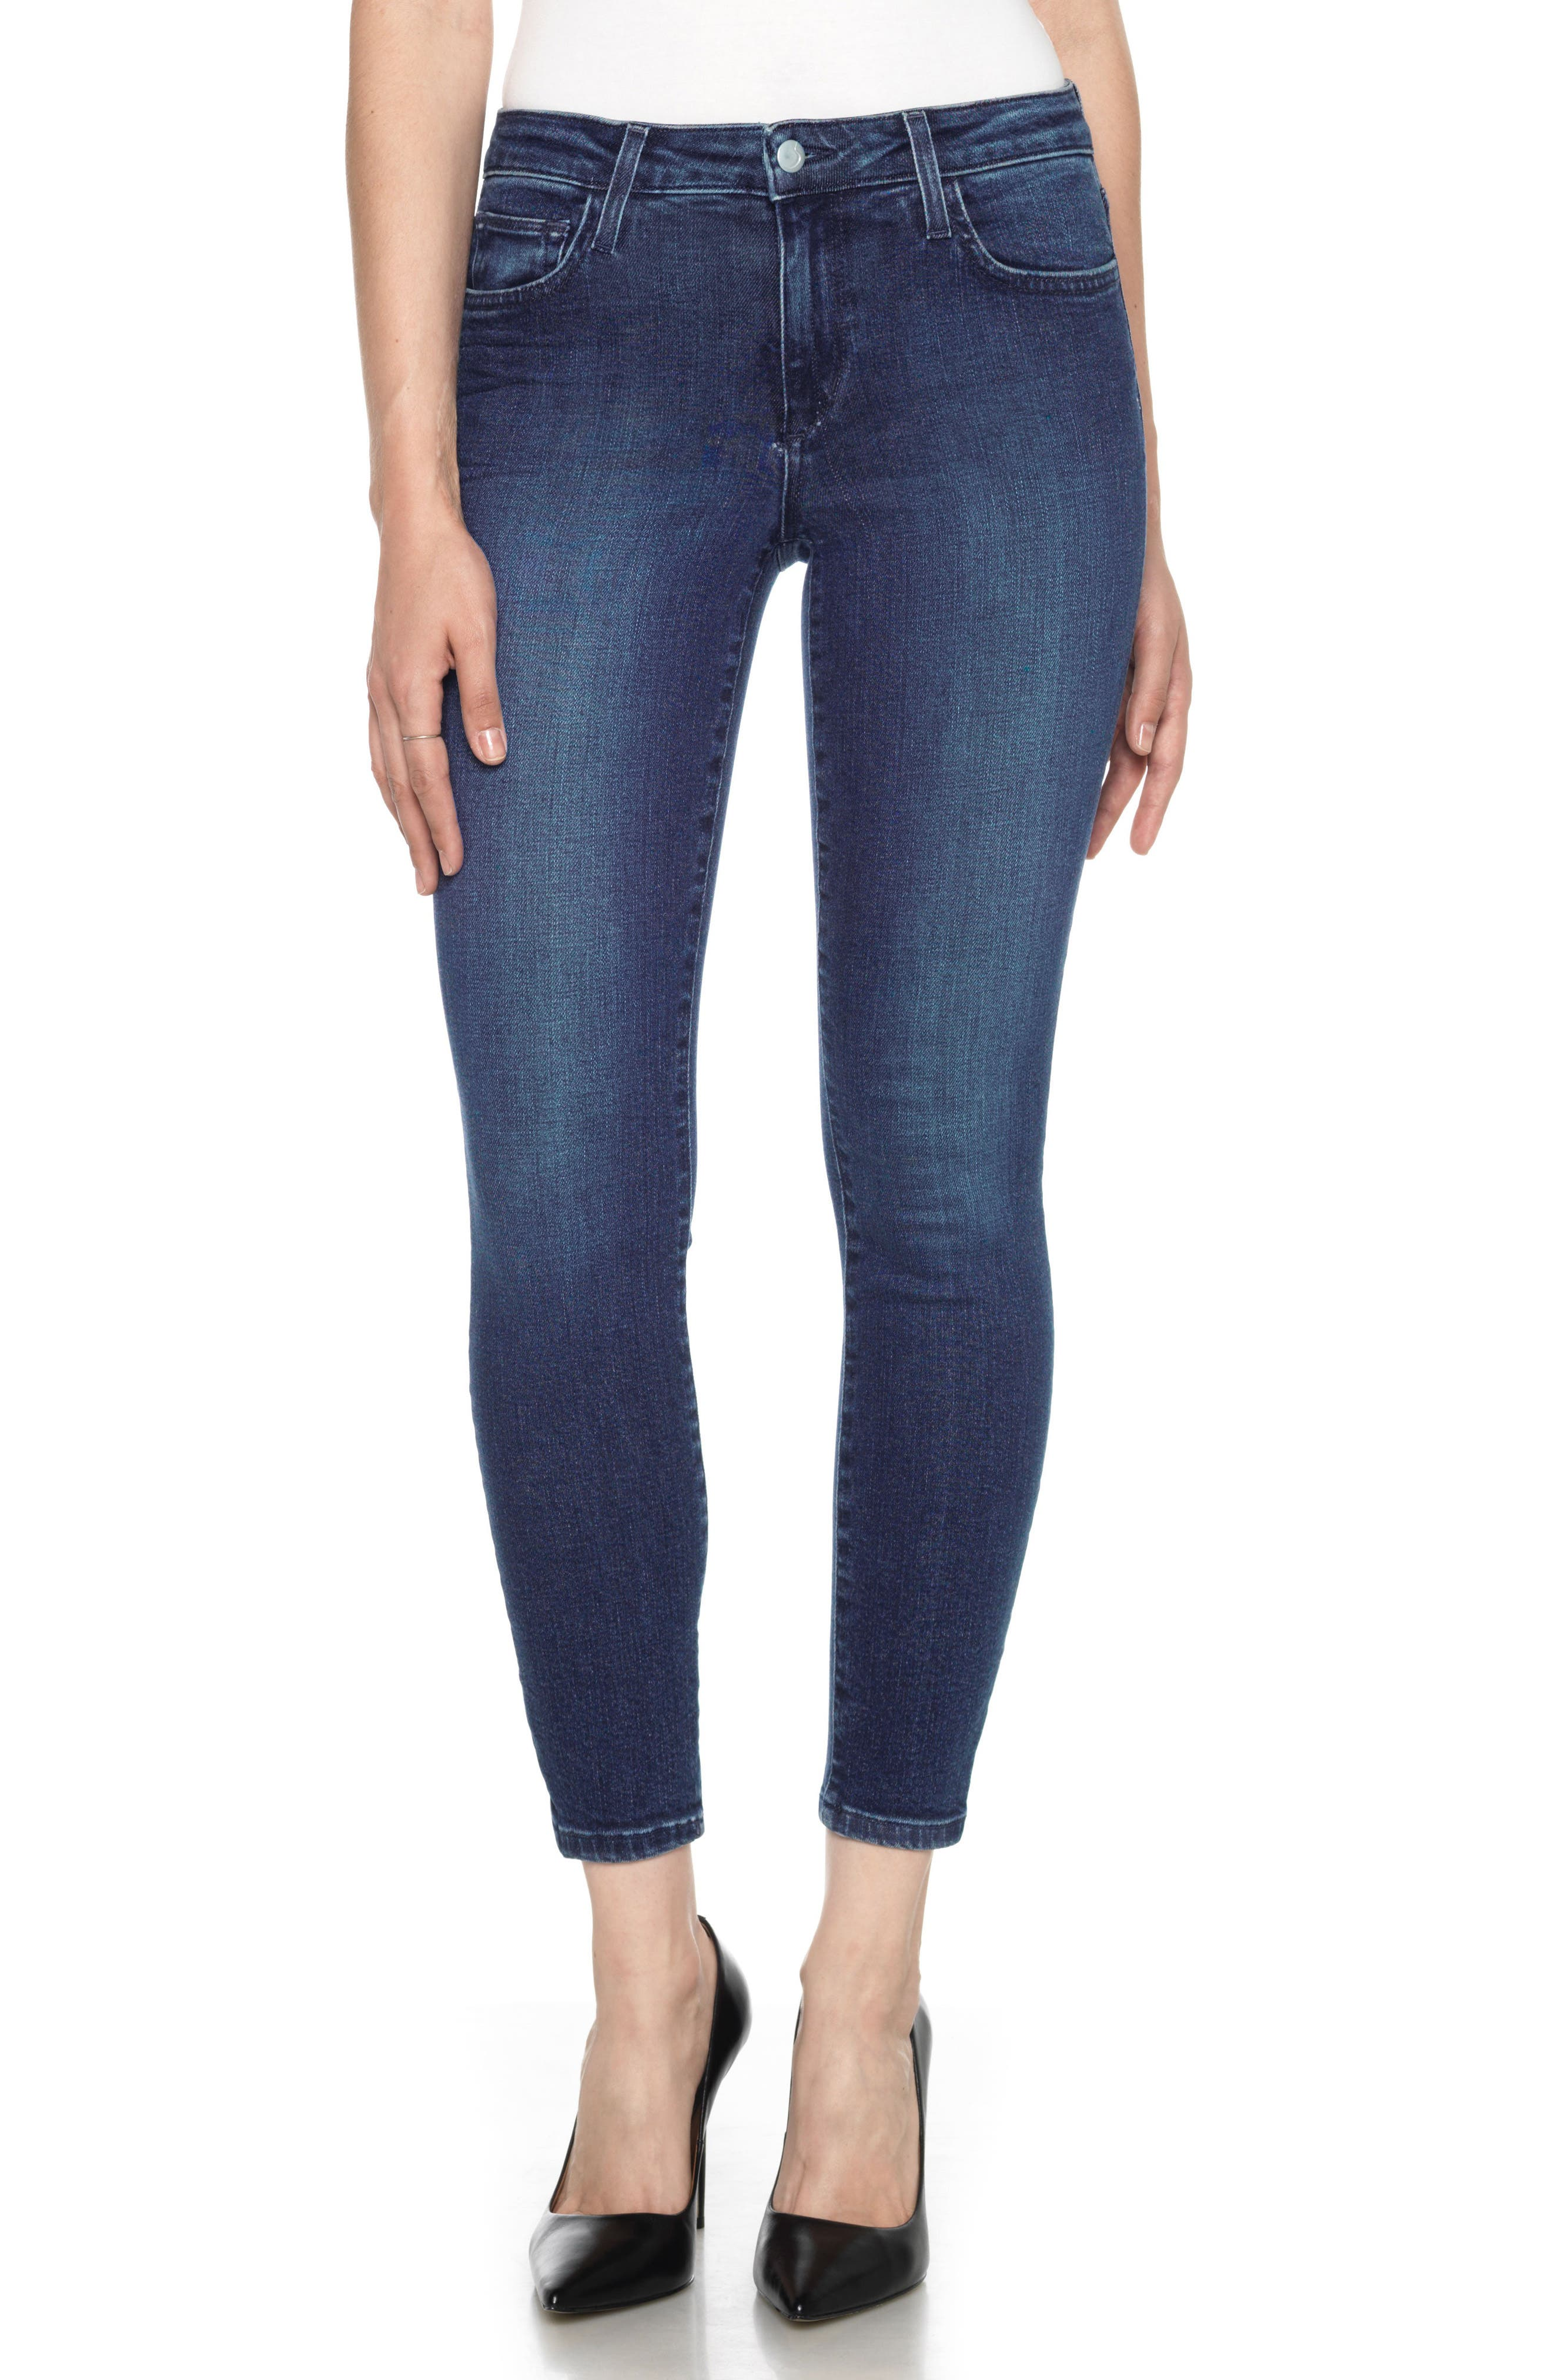 Icon High Waist Crop Skinny Jeans,                             Main thumbnail 1, color,                             400